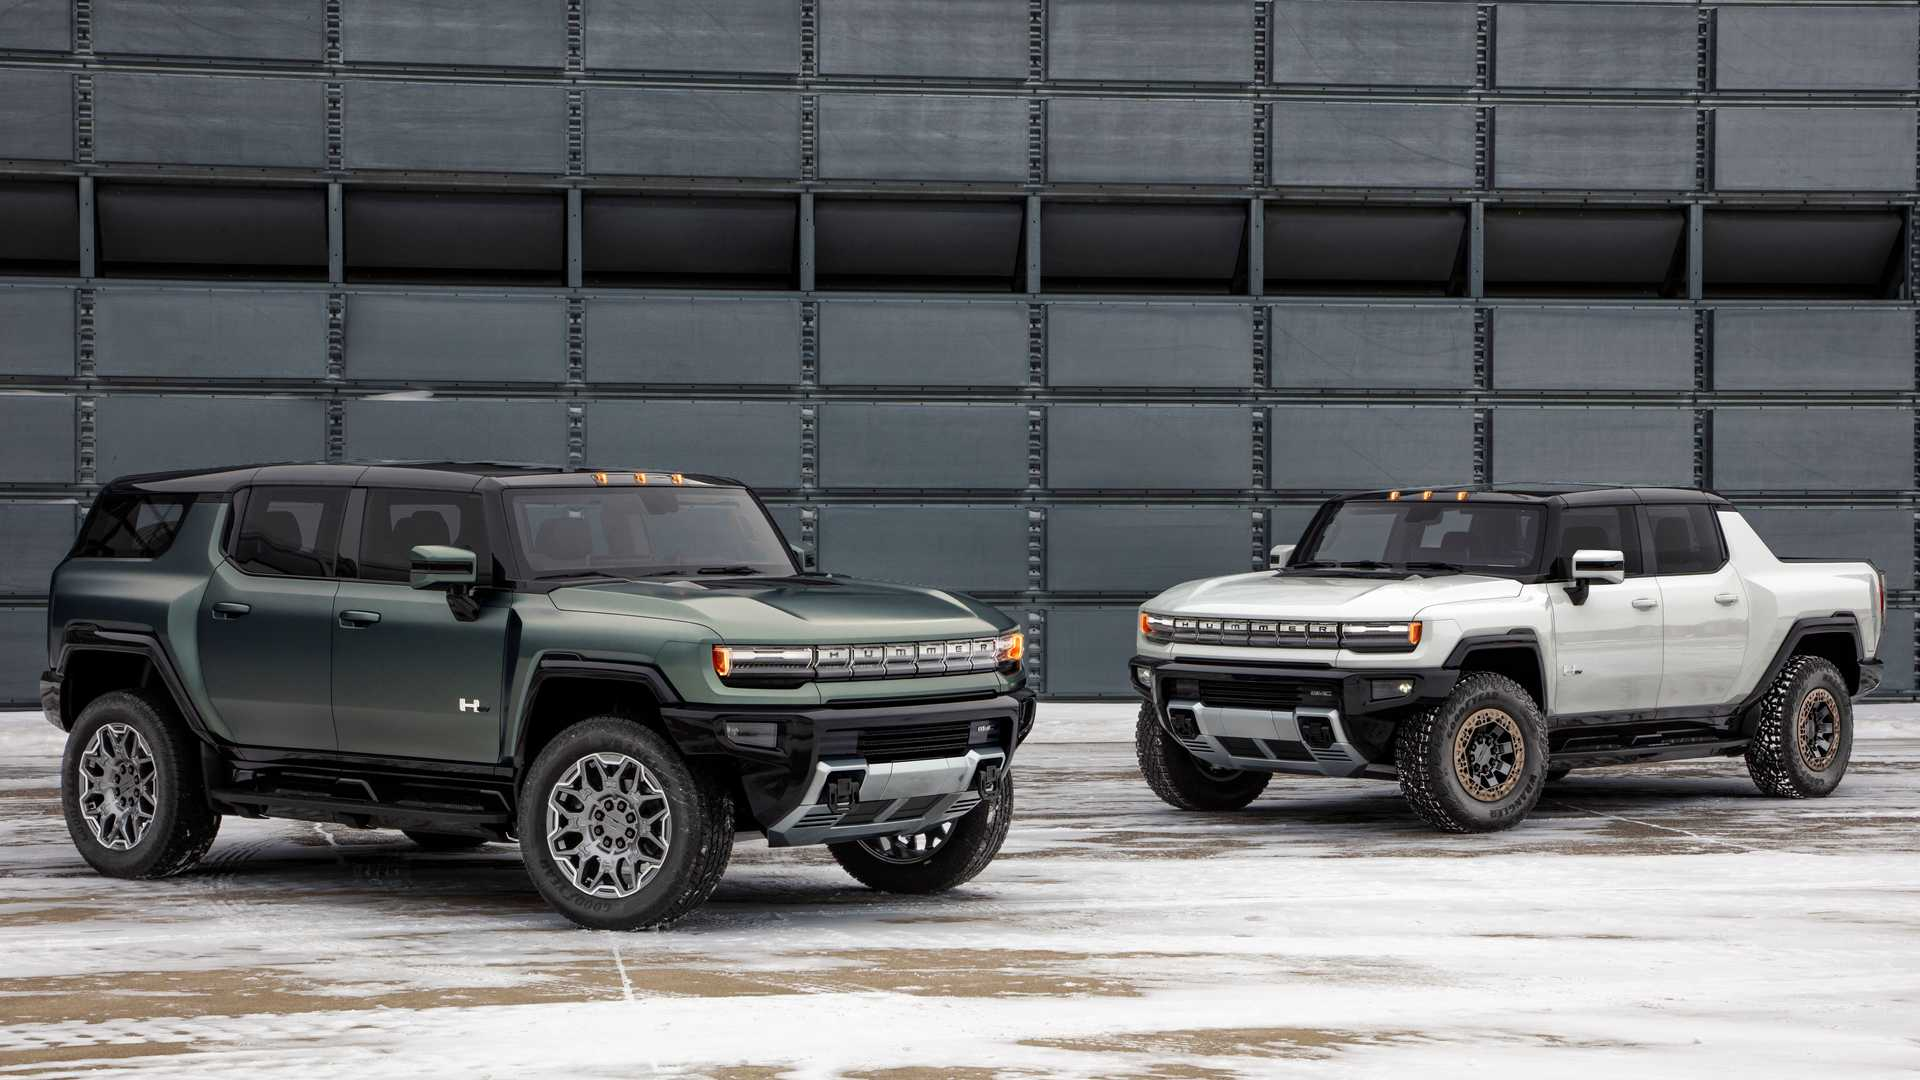 2024-gmc-hummer-ev-suv-and-truck.jpg